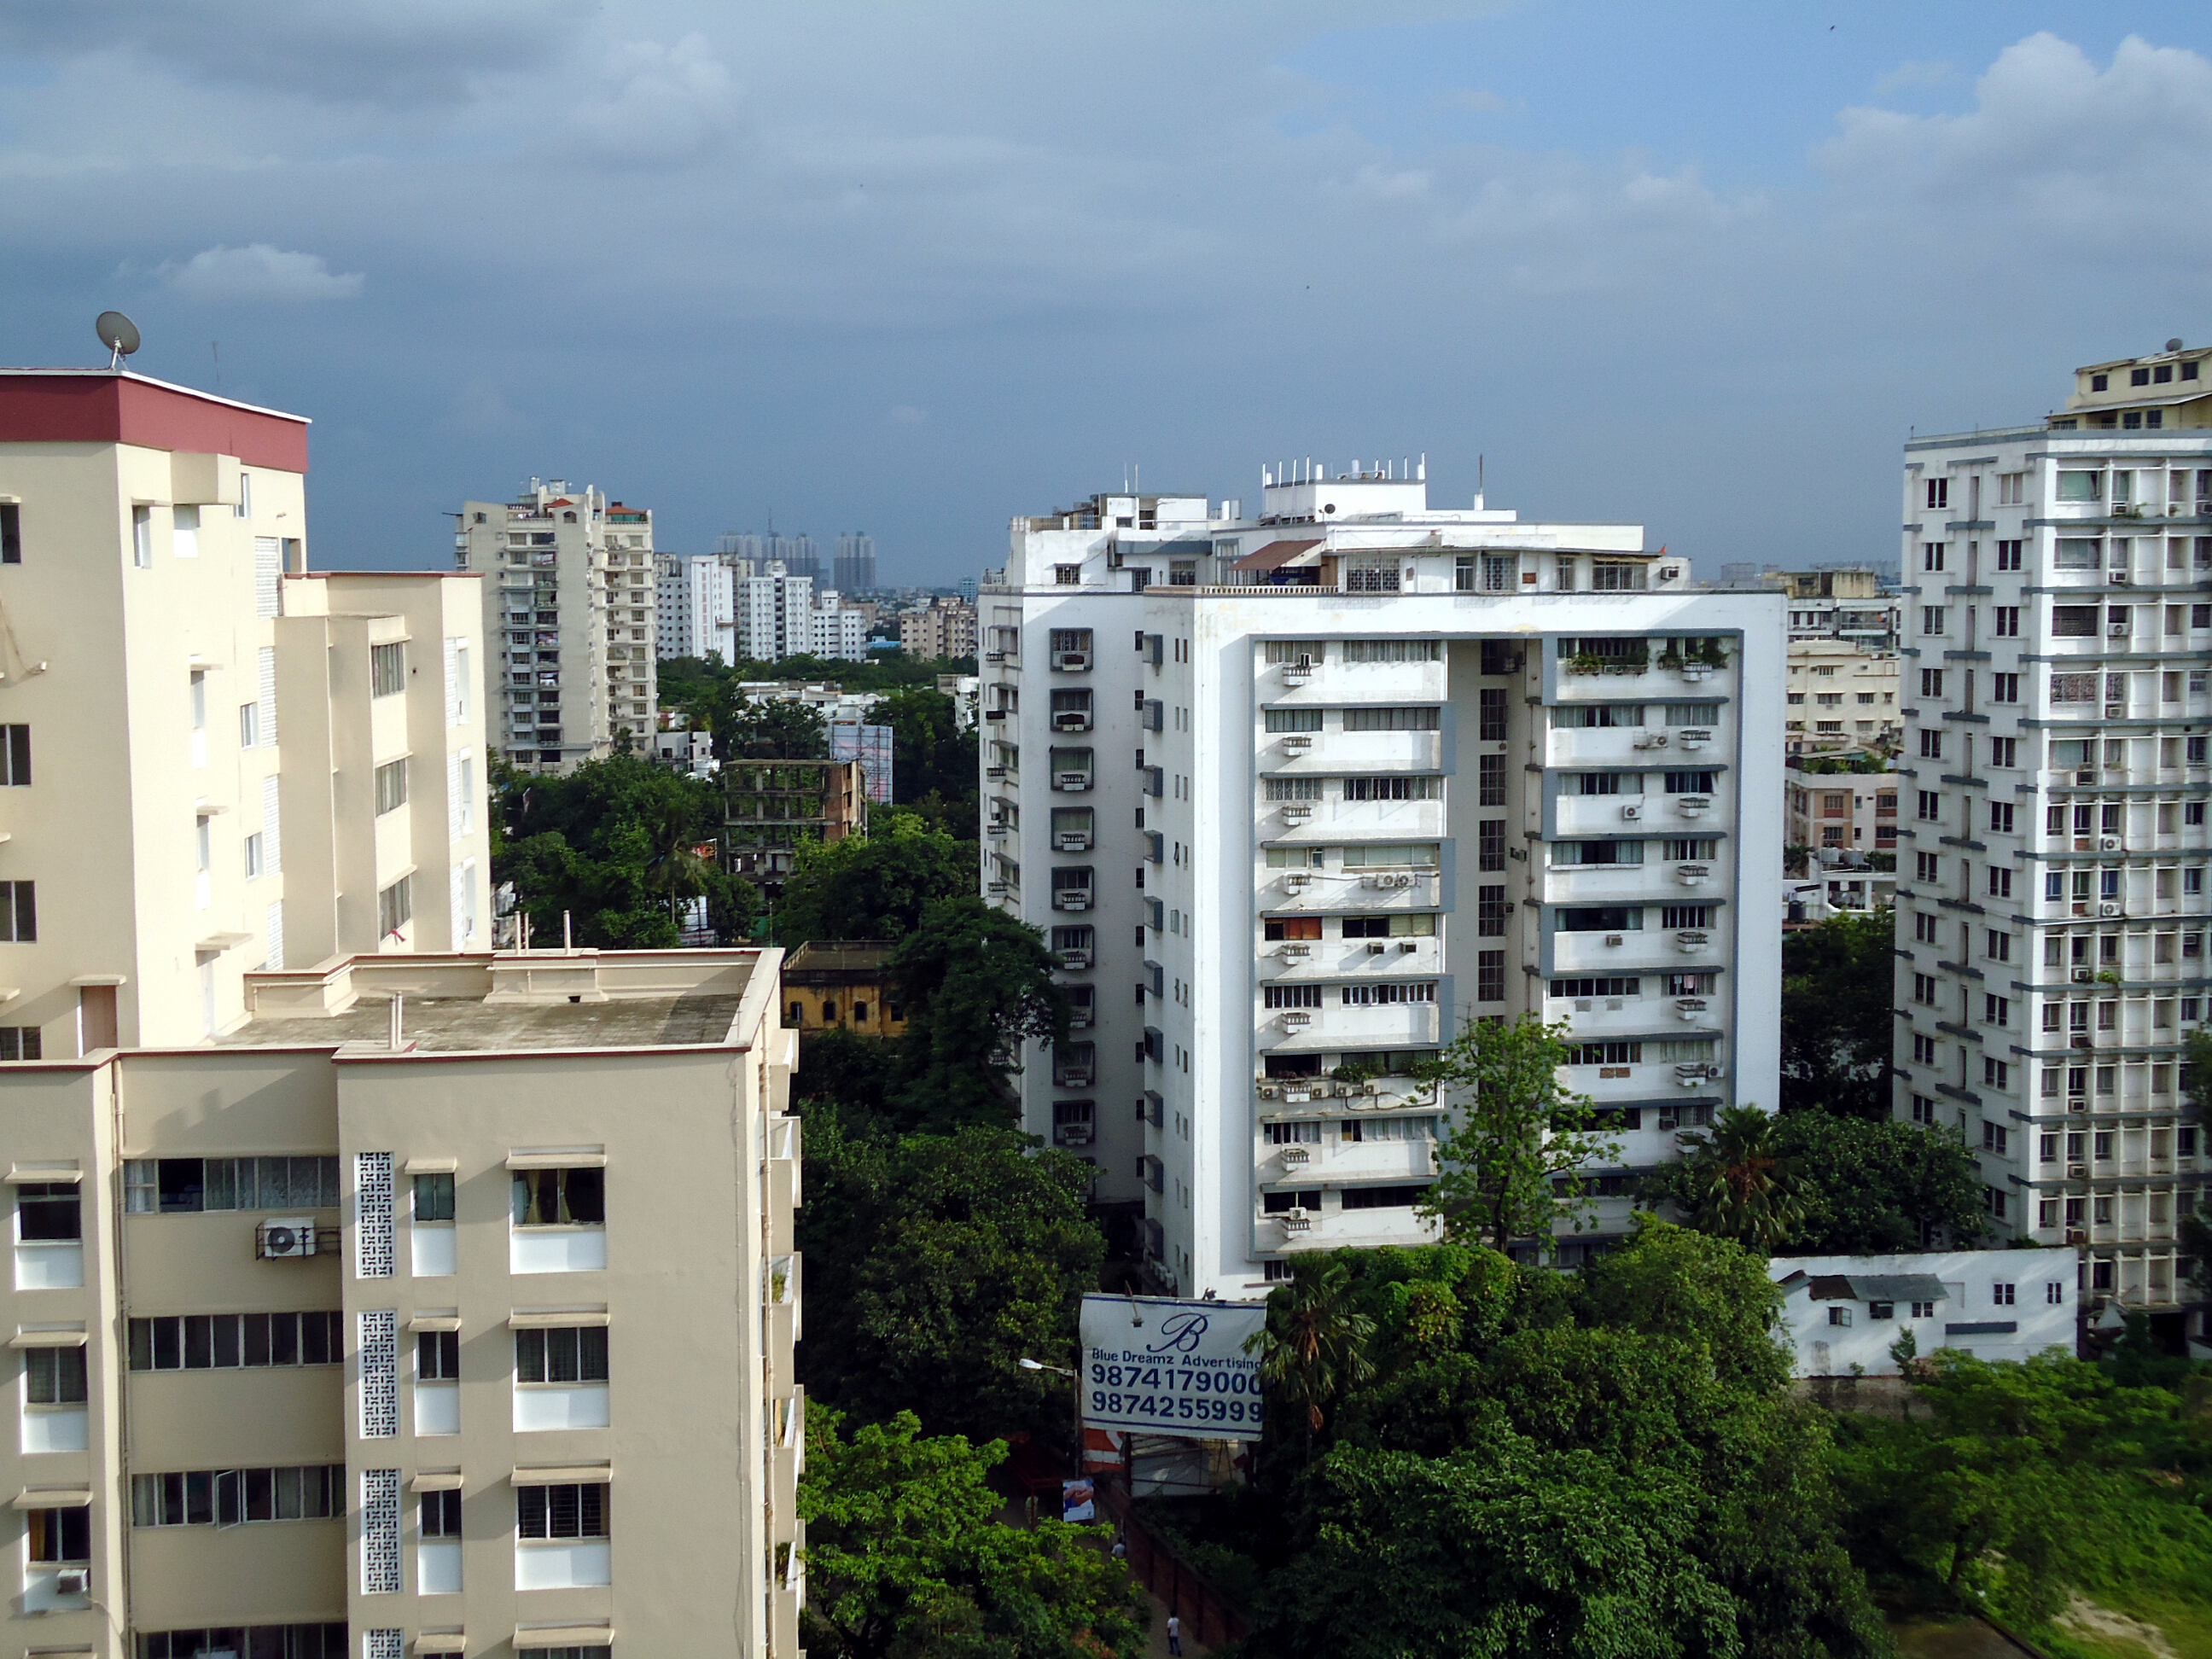 Skyline of Ballygunge, a South Kolkata locality consisting of low-rise and mid-rise buildings